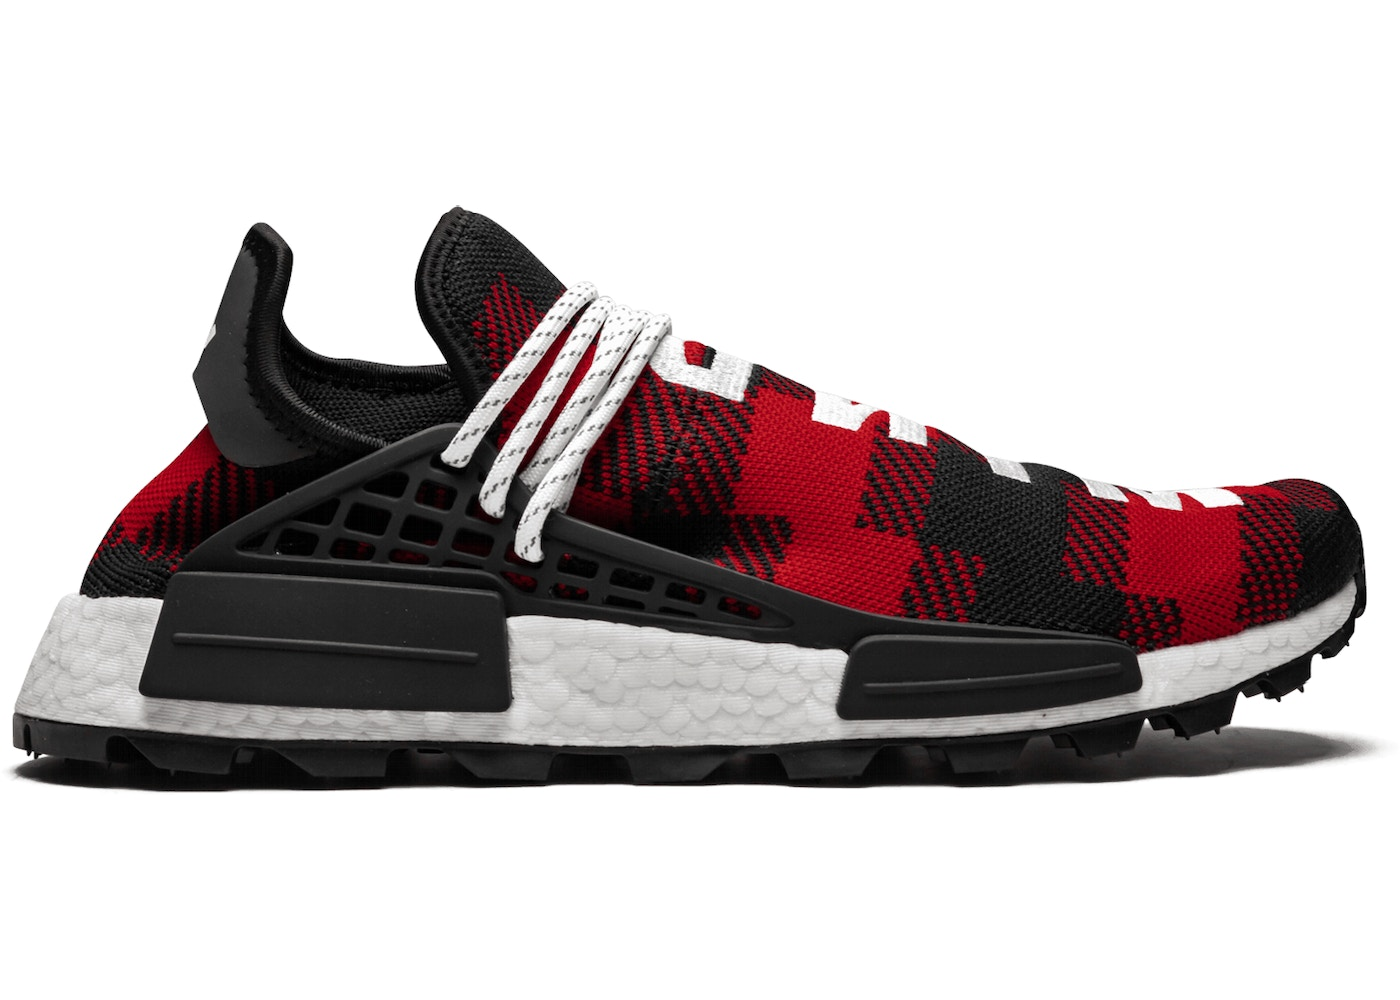 Pharrell Adidas NMD Hu X BBC Releasing In Plaid Colors This